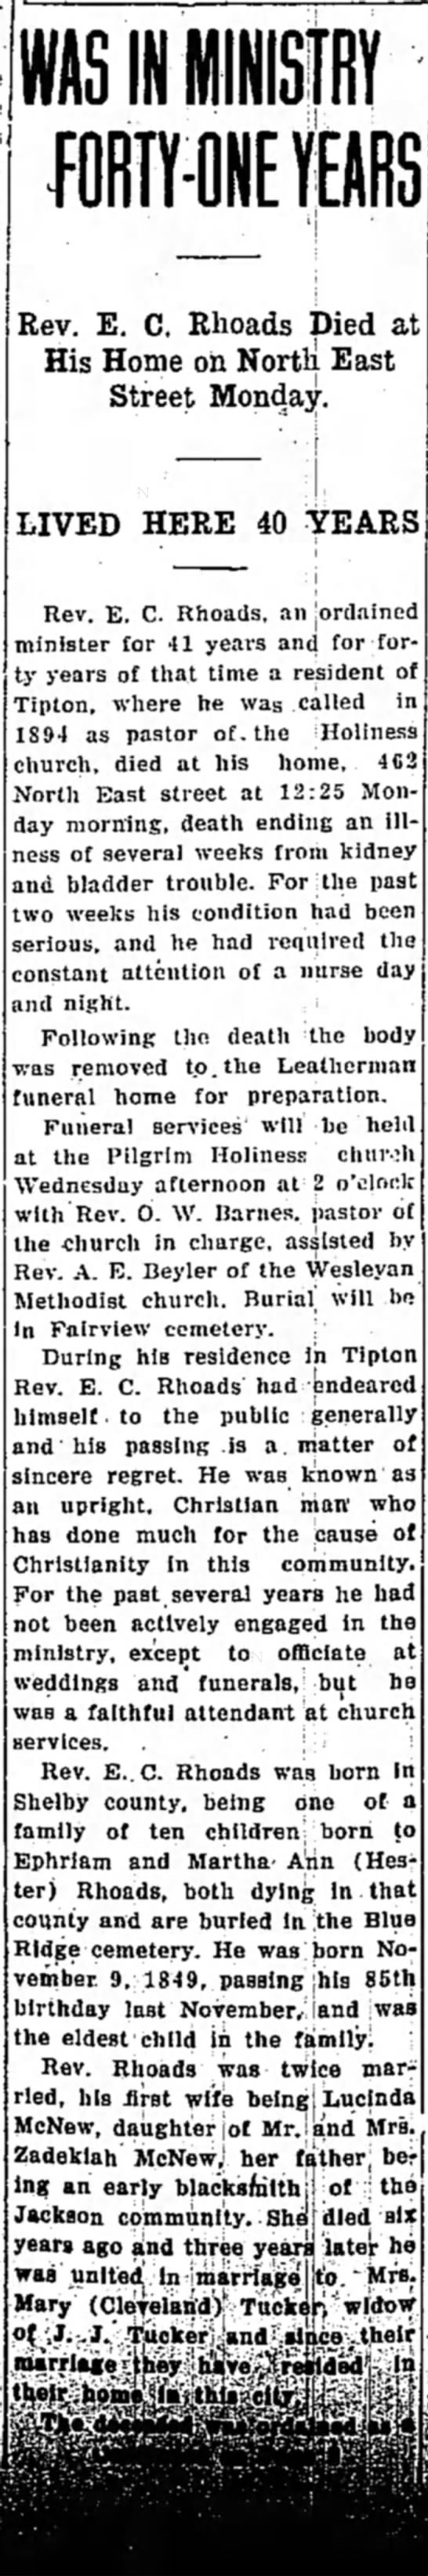 Tipton Tribune, Jan. 14, 1935 pg 1 -